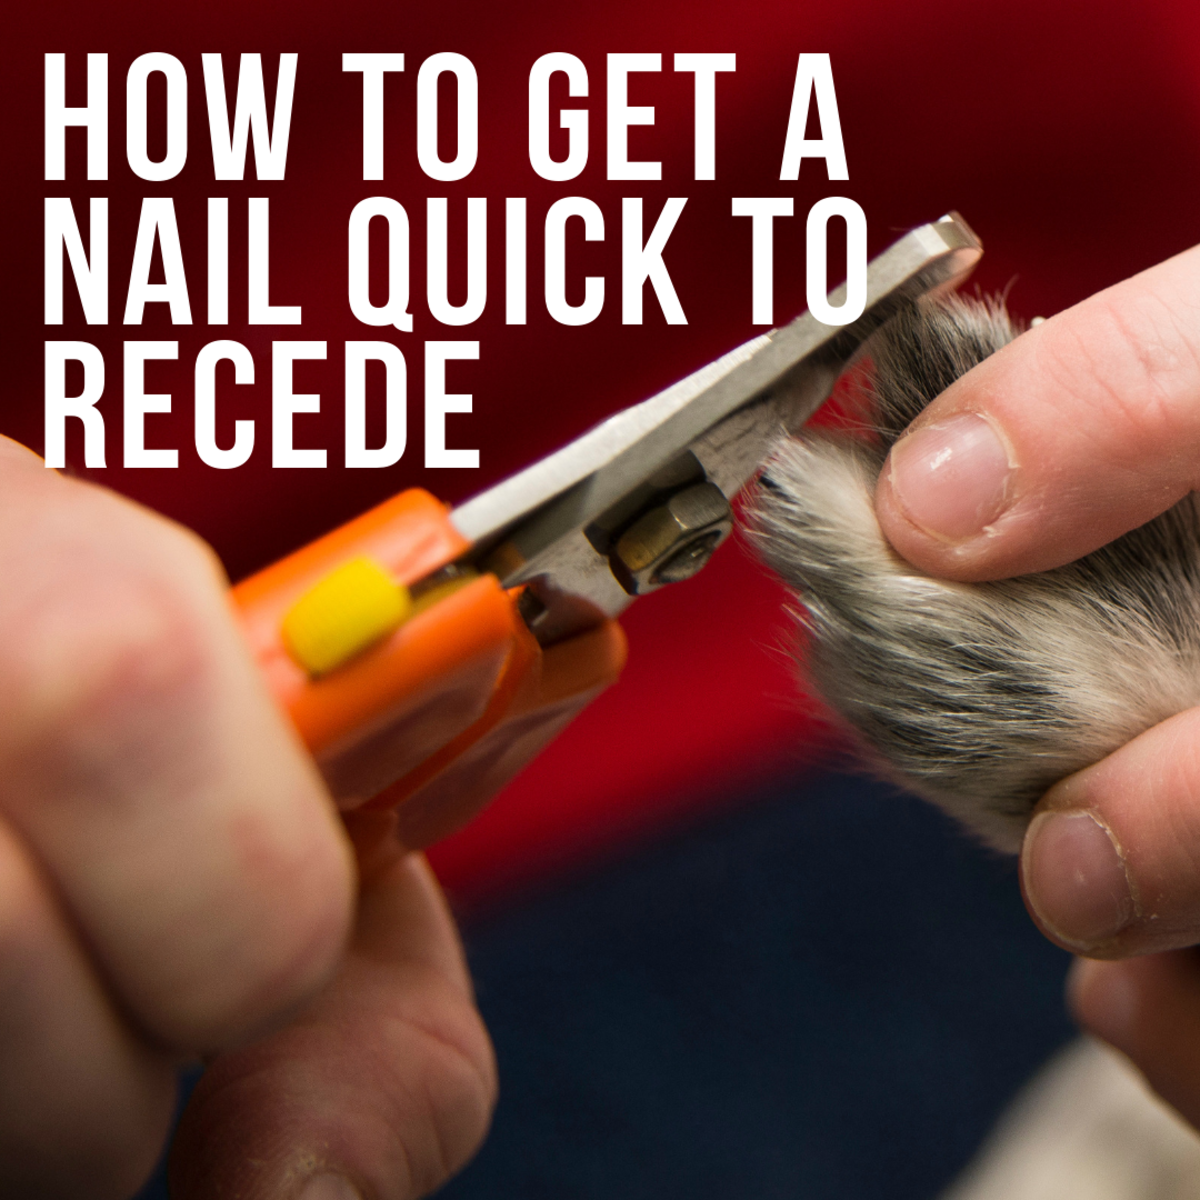 How to Get a Nail Quick to Recede